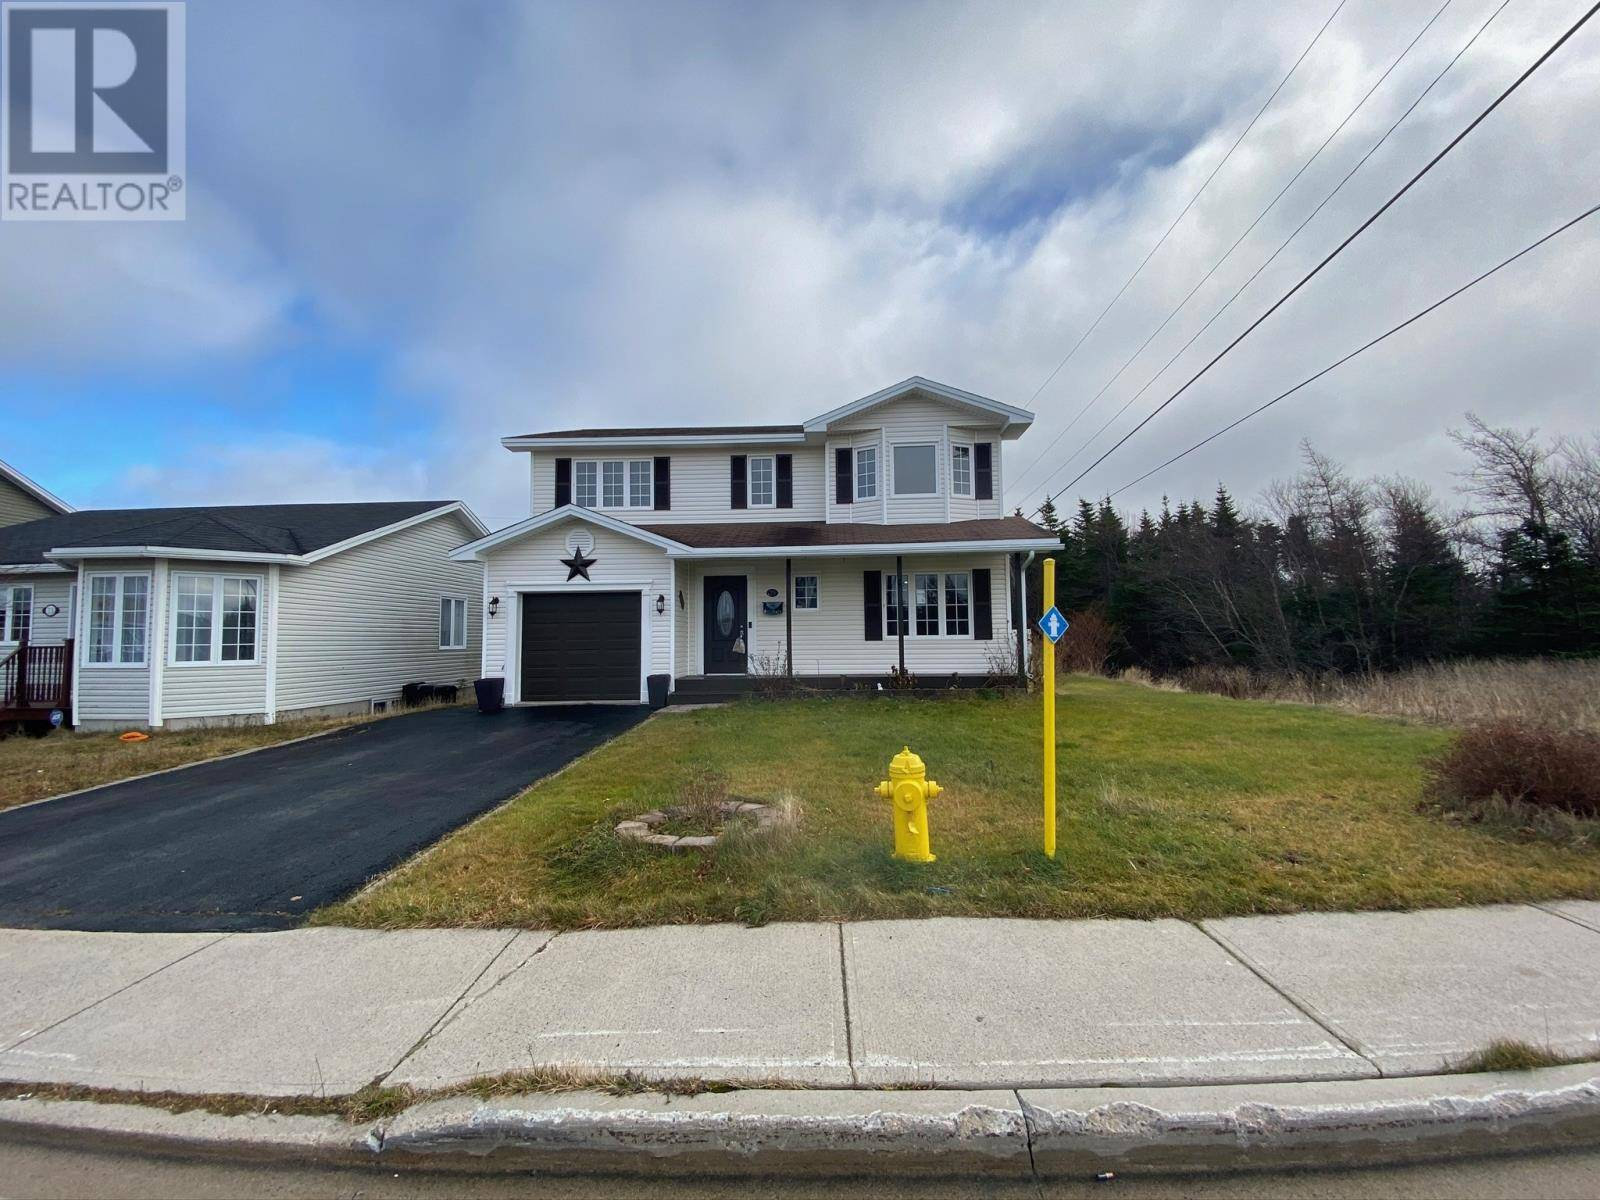 House for sale at 75 Treetop Dr St. John's Newfoundland - MLS: 1207734